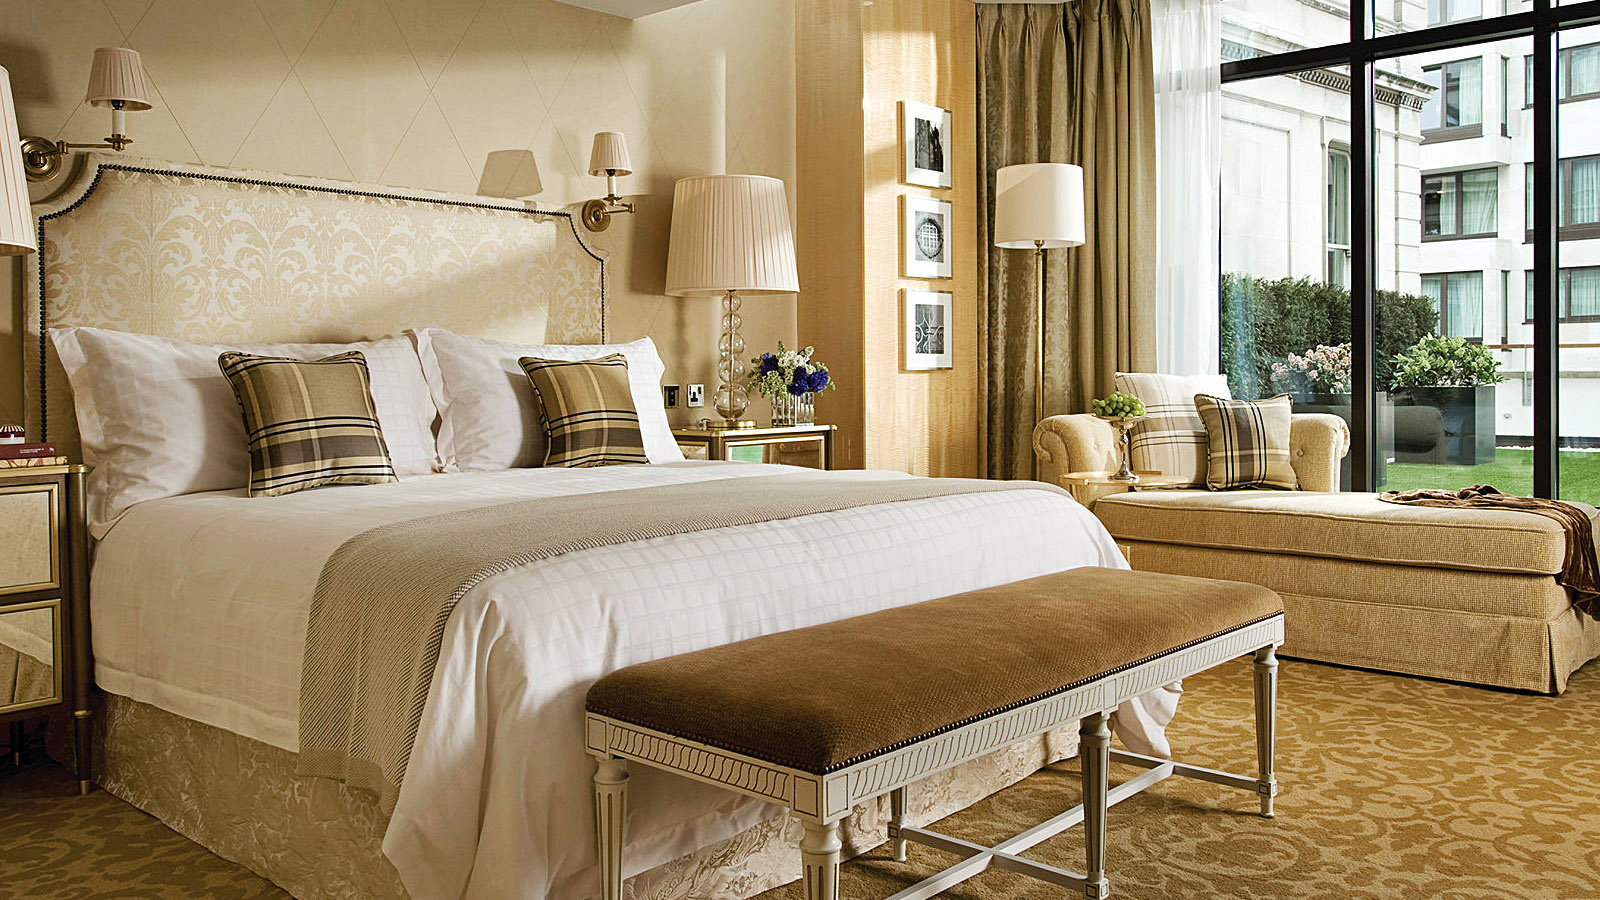 London Weekend Escape Offer at Four Seasons Hotel London at Park Lane